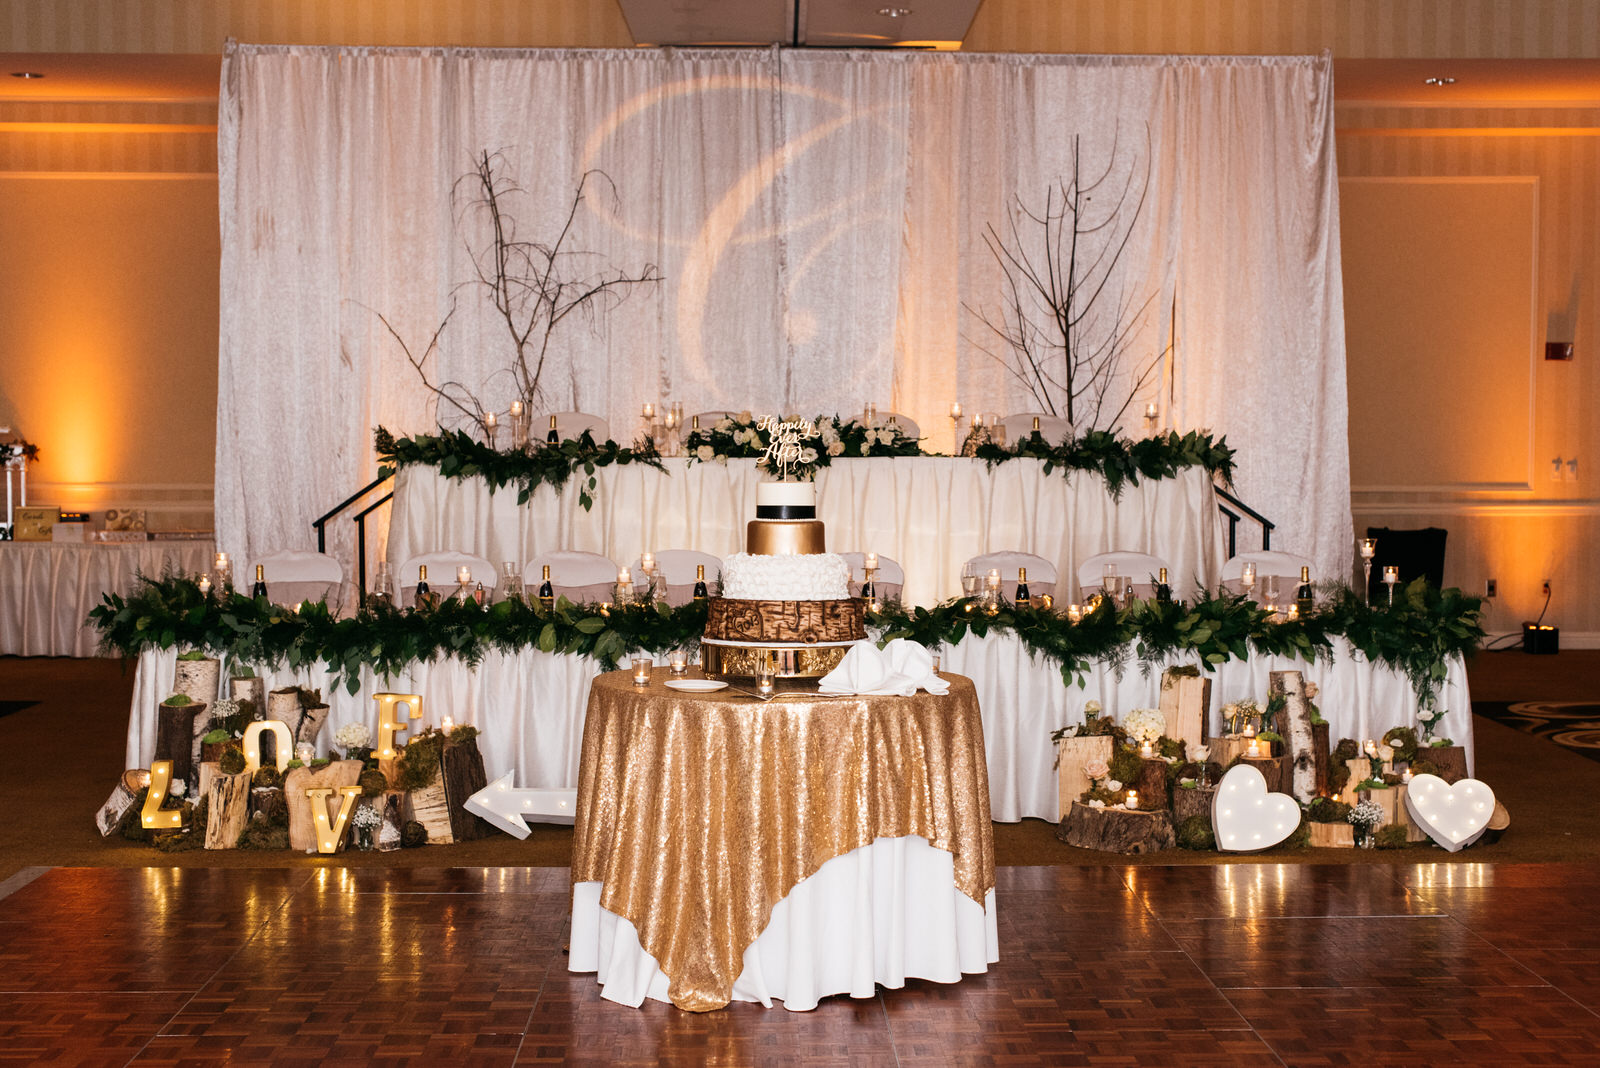 hilton_garden_inn_southpointe_pittsburgh_weddings_81.jpg